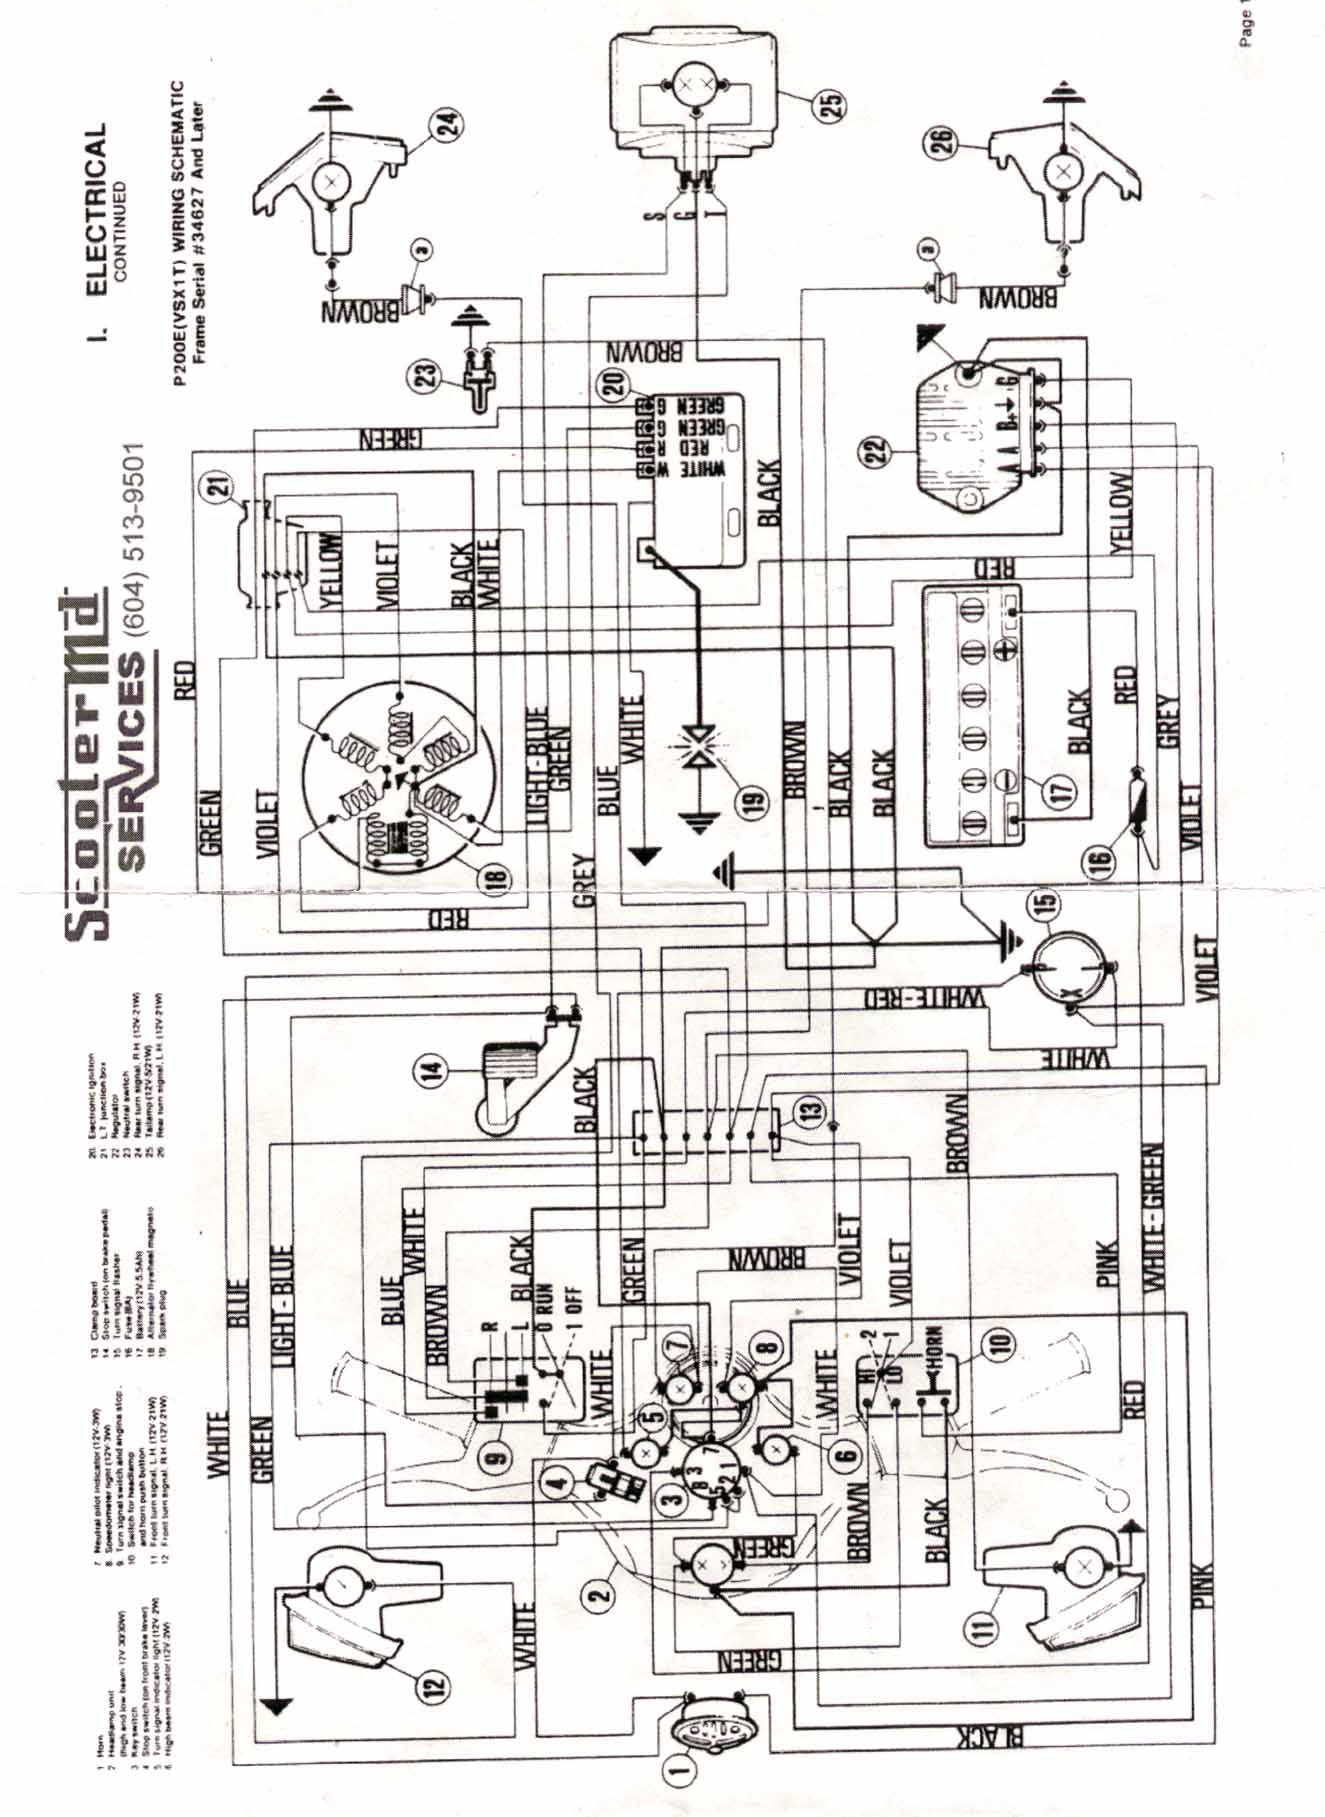 p200diag2 vespa p series maintenance & repair vespa p125x wiring diagram at virtualis.co